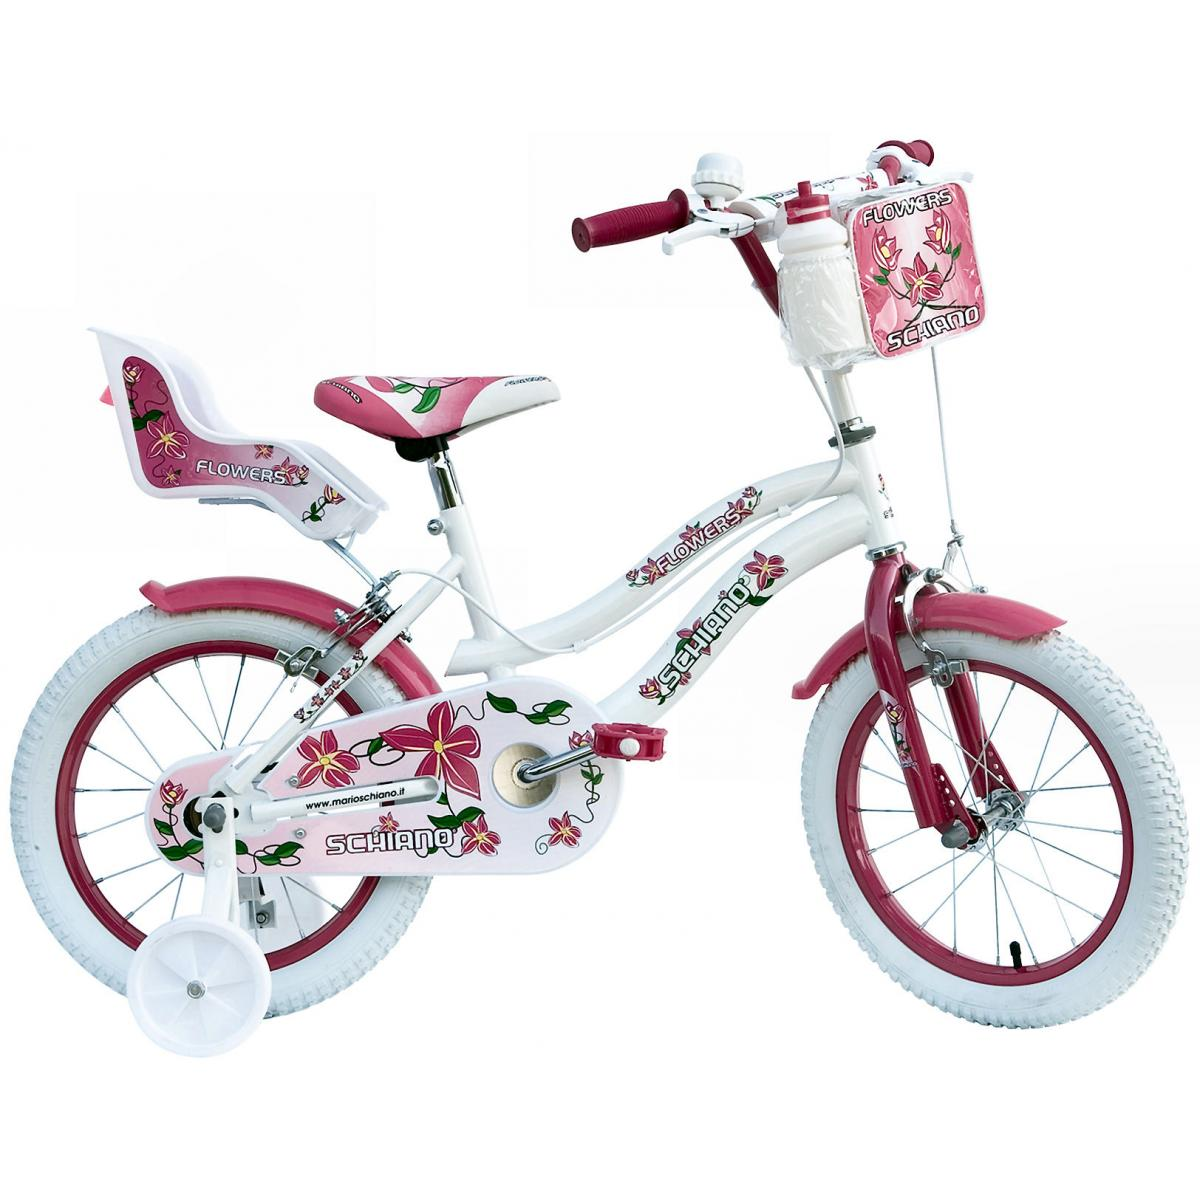 kinderfahrrad schiano flowers 16 zoll fahrrad kinder 5 6. Black Bedroom Furniture Sets. Home Design Ideas